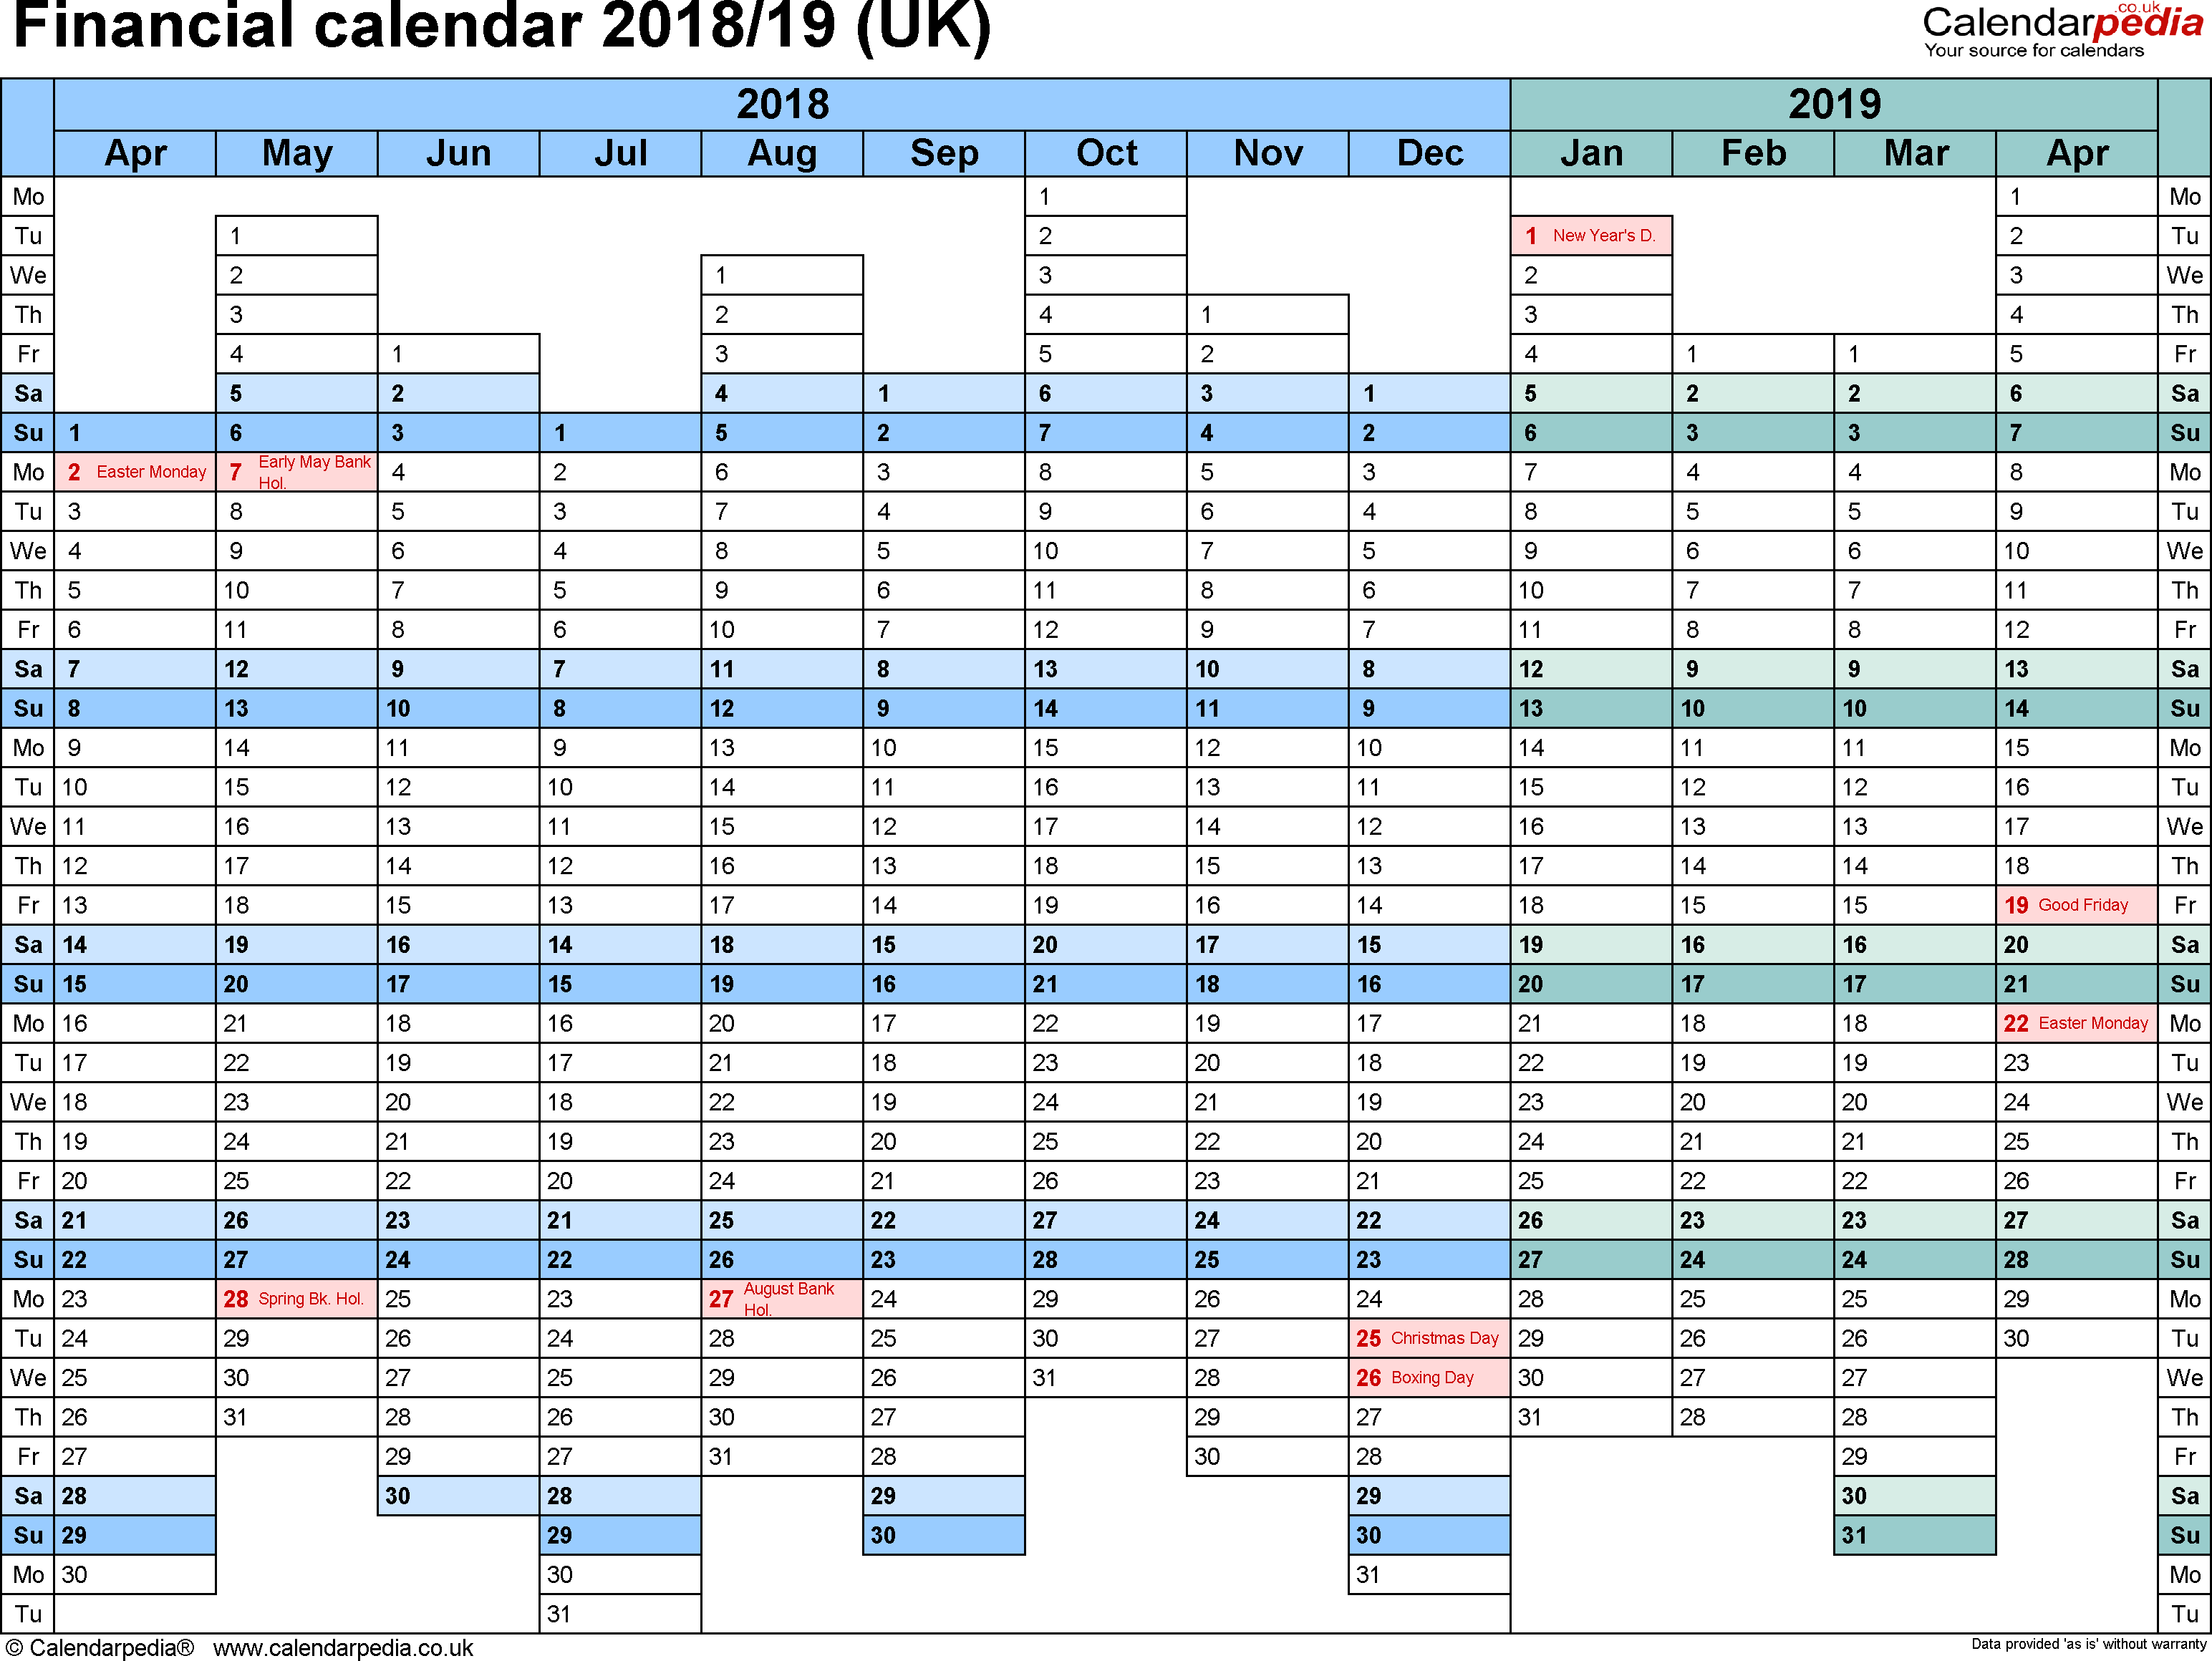 Fiscal Year 2019 Calendar Excel With Financial Calendars 2018 19 UK In Microsoft Format